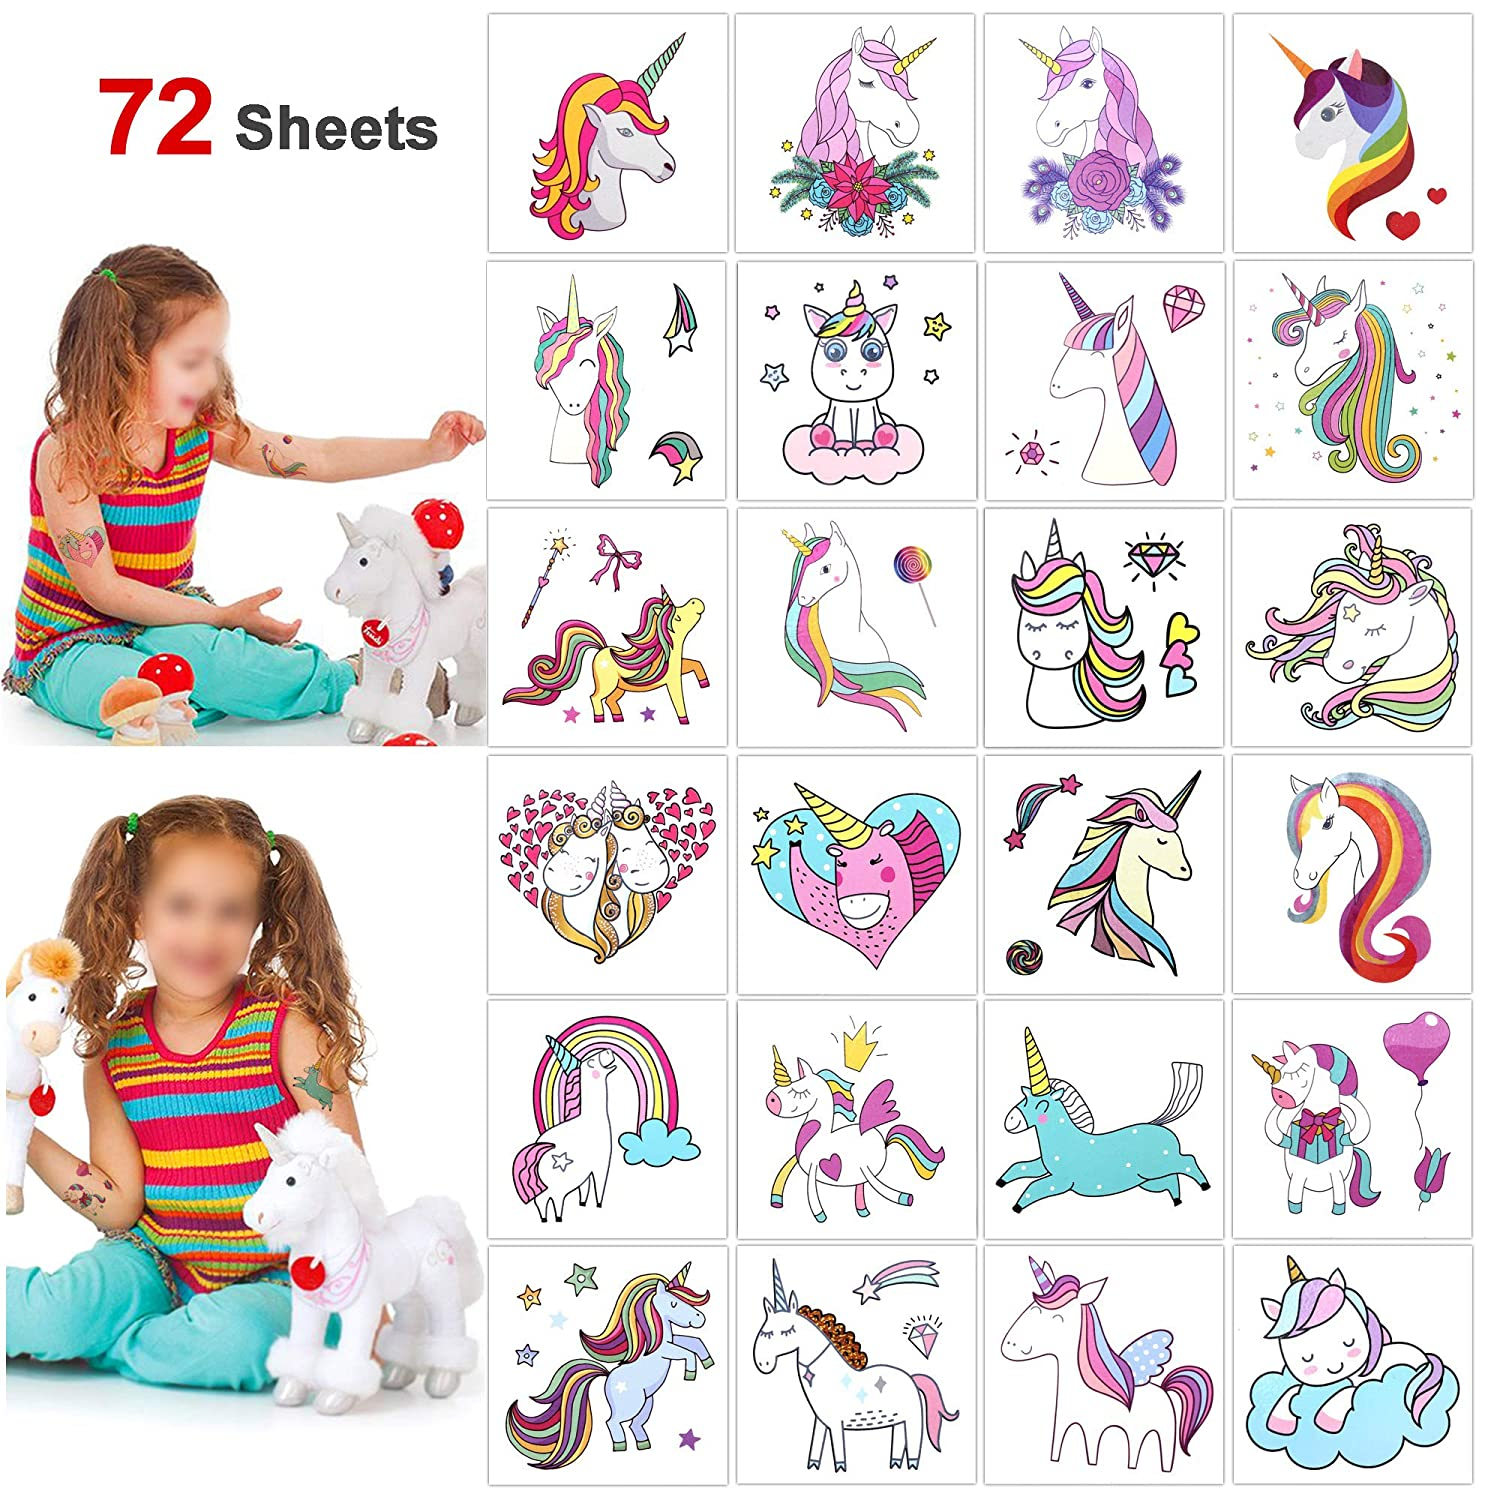 Unicorn Party Favors Temporary Tattoos Stickers(72Sheets), Konsait Funny Girls Boys Rainbow Unicorn Tattoos Great Kids Party Accessories Gifts for Unicorn Birthday Toddlers Baby Showers Supplies